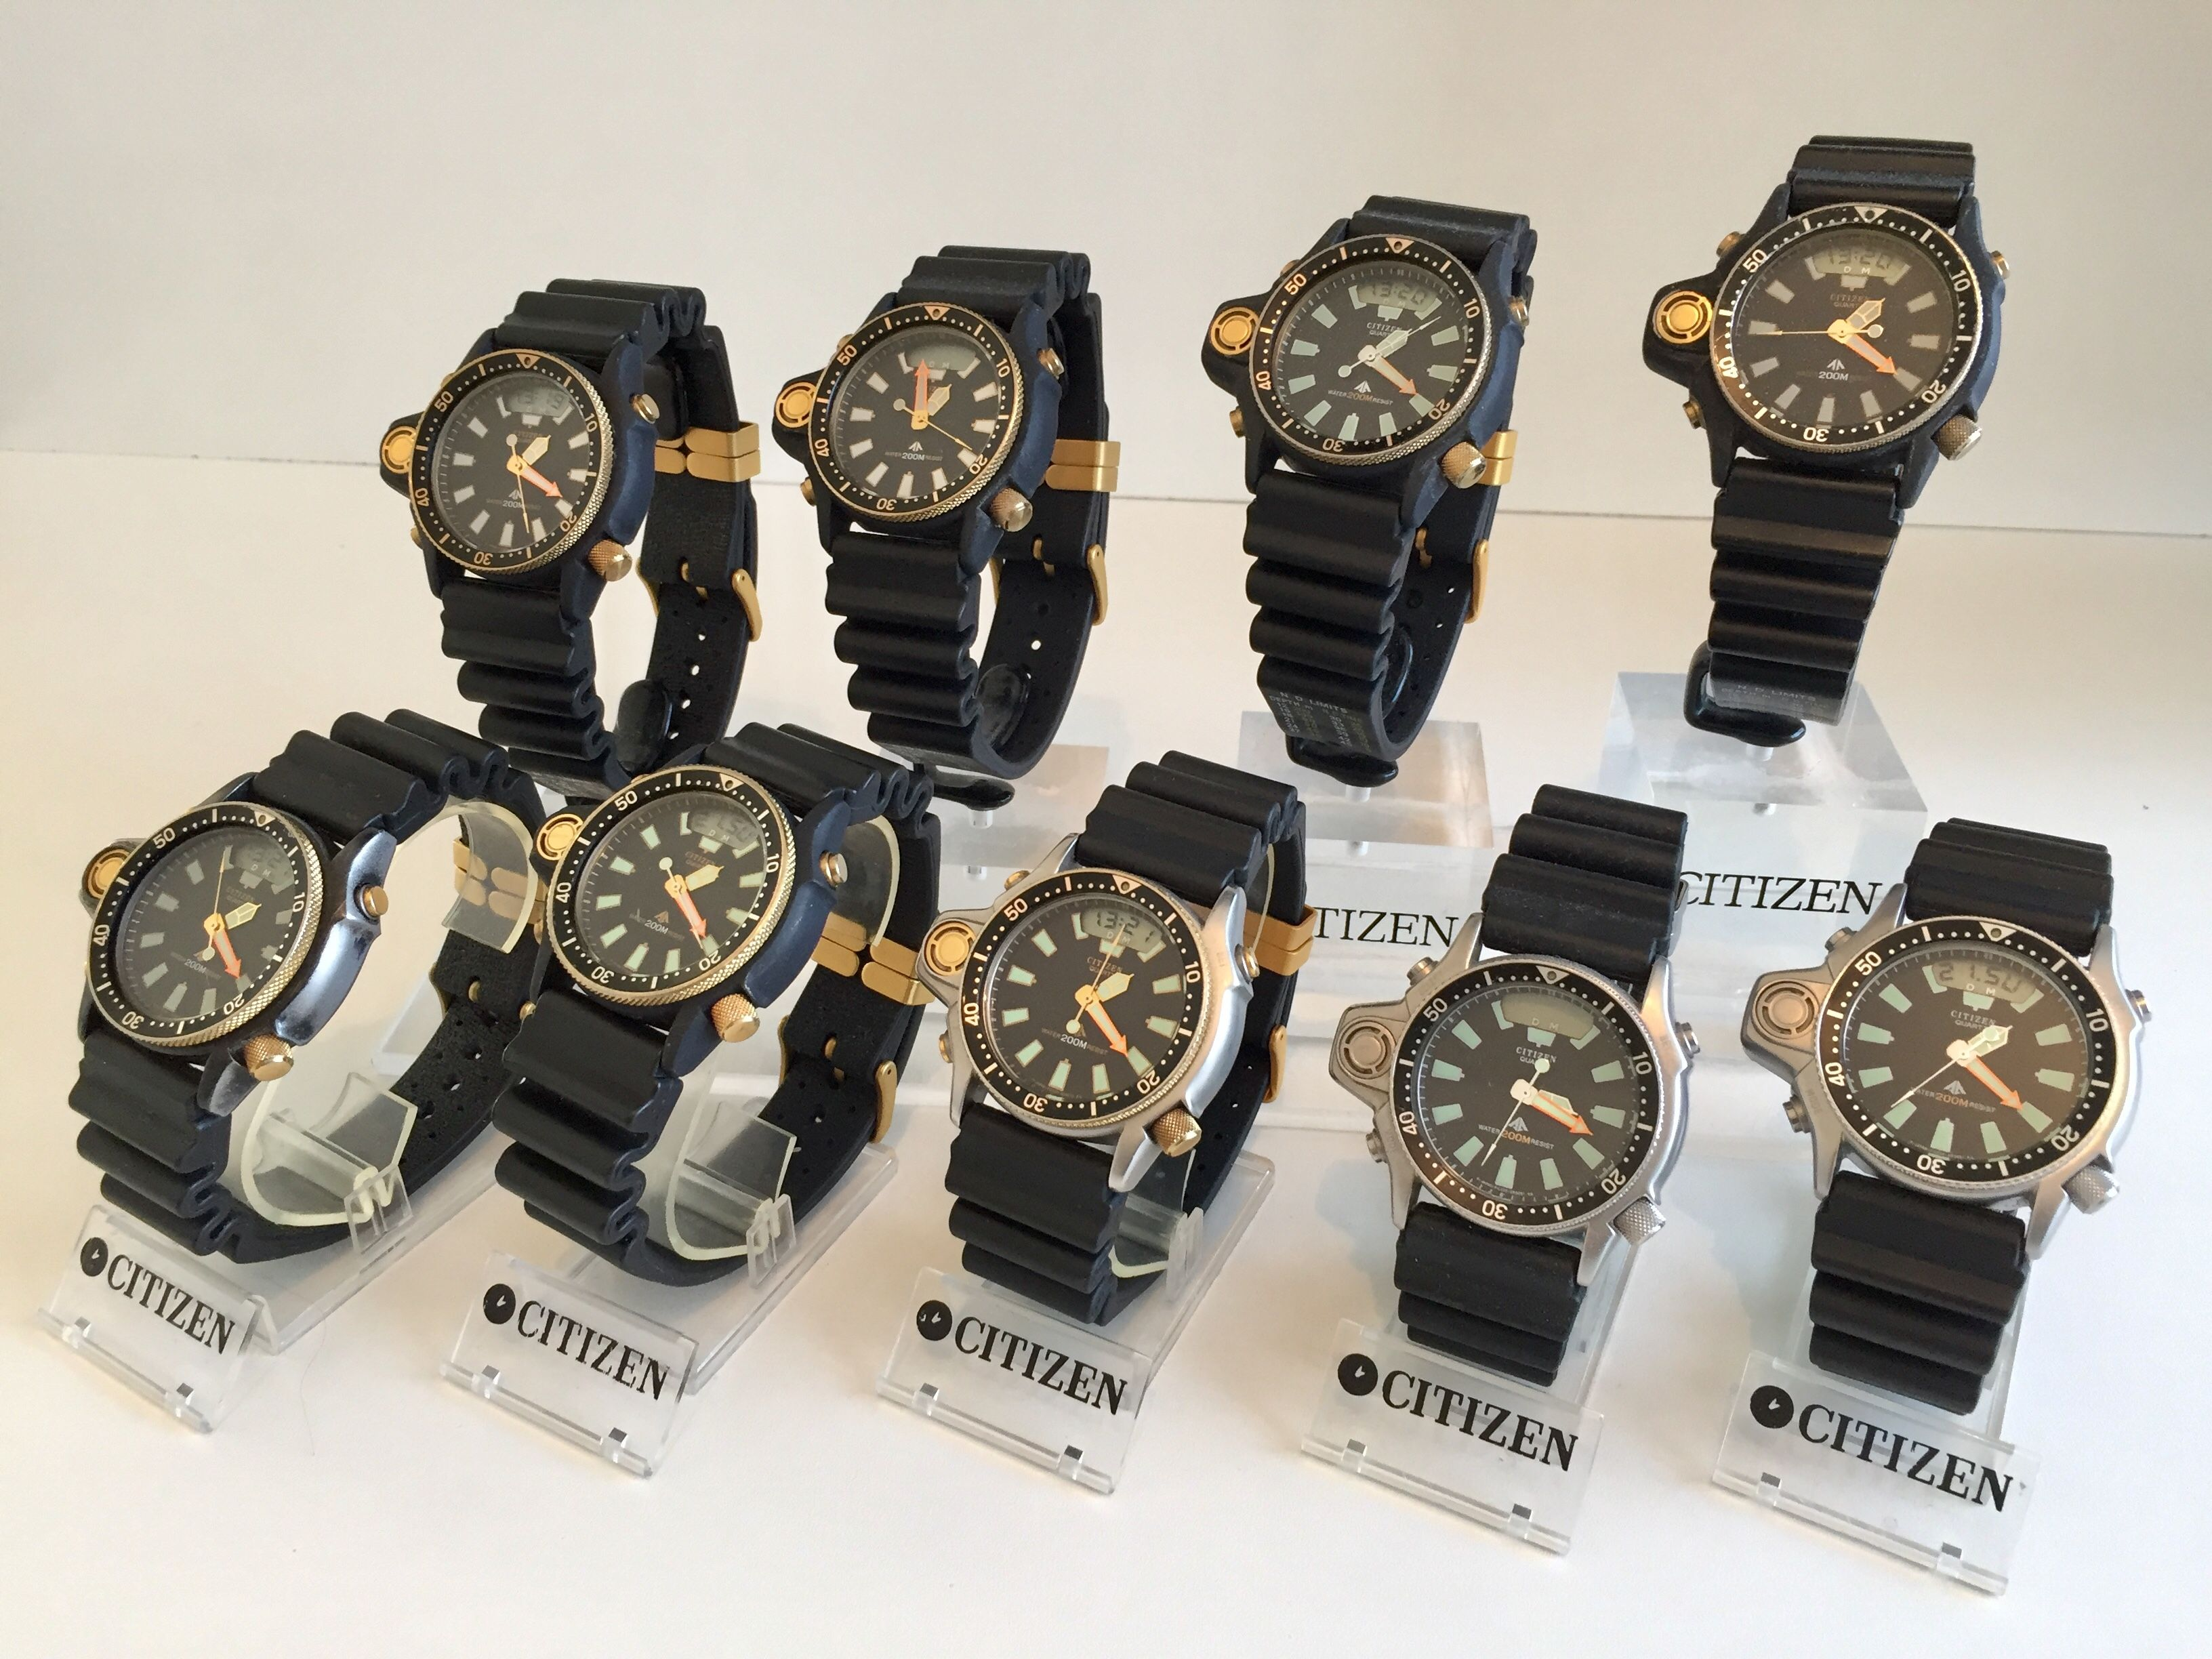 cfbf6c5d044 Nice display of the Citizen Aqualand CO22-CO23-CO26-CO28-CO29 family ...